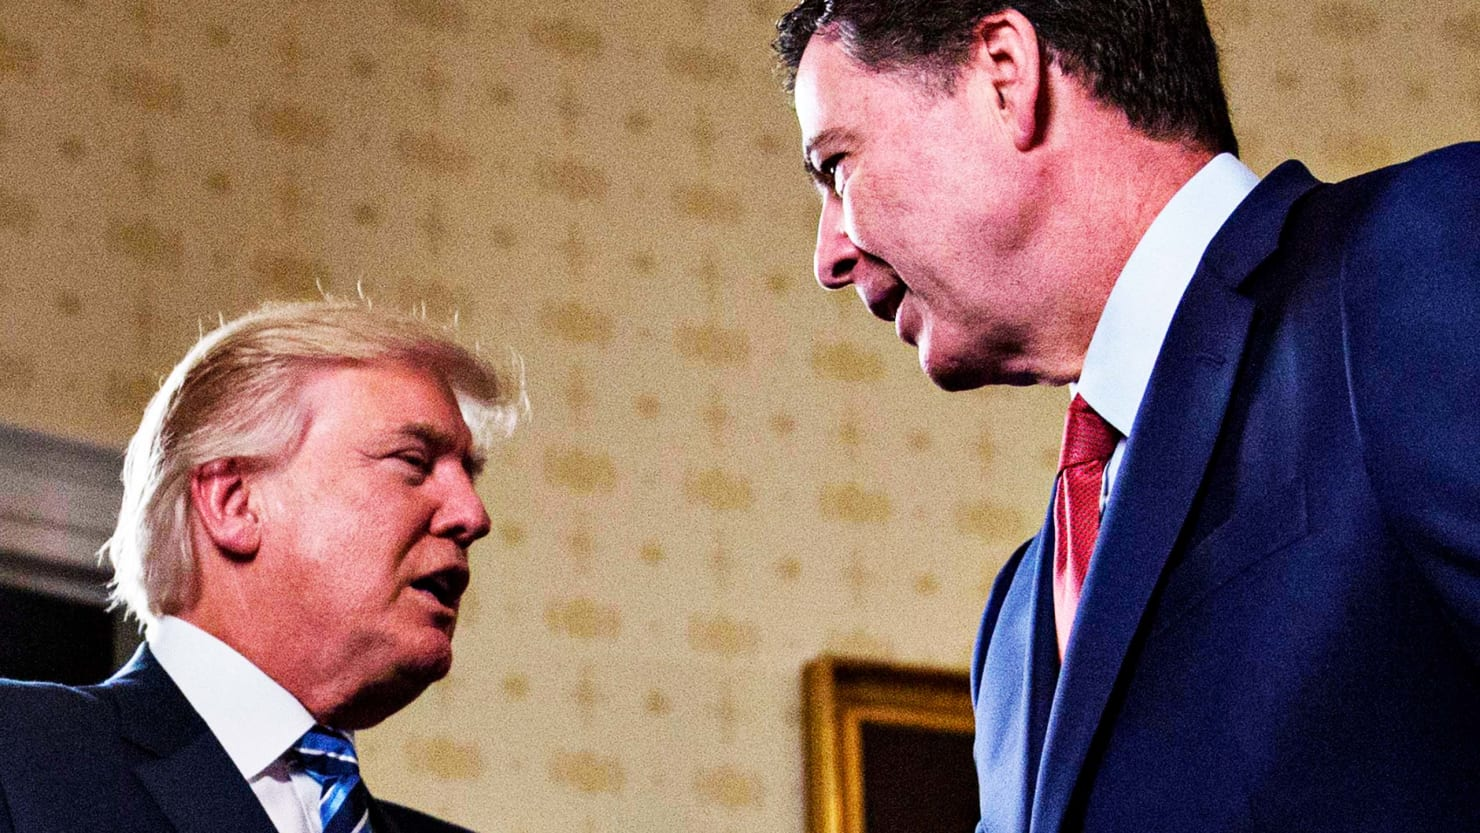 WATCH Comey compares Trump to mob boss in ABC interview ...